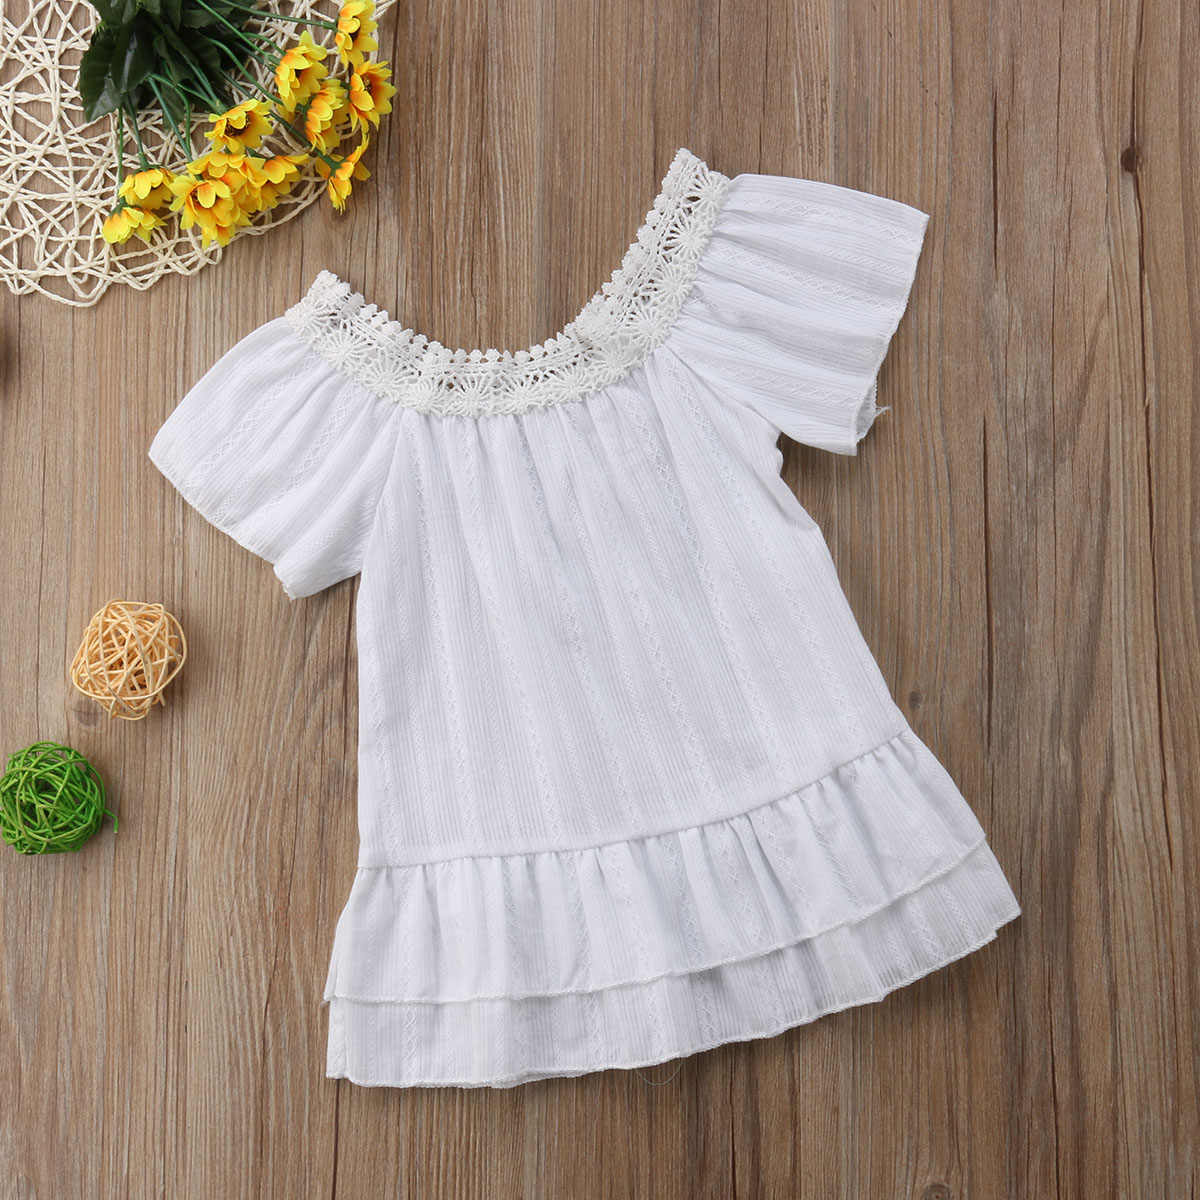 337c5877469d Detail Feedback Questions about Cotton Lace Girl Dress Kids 2018 ...